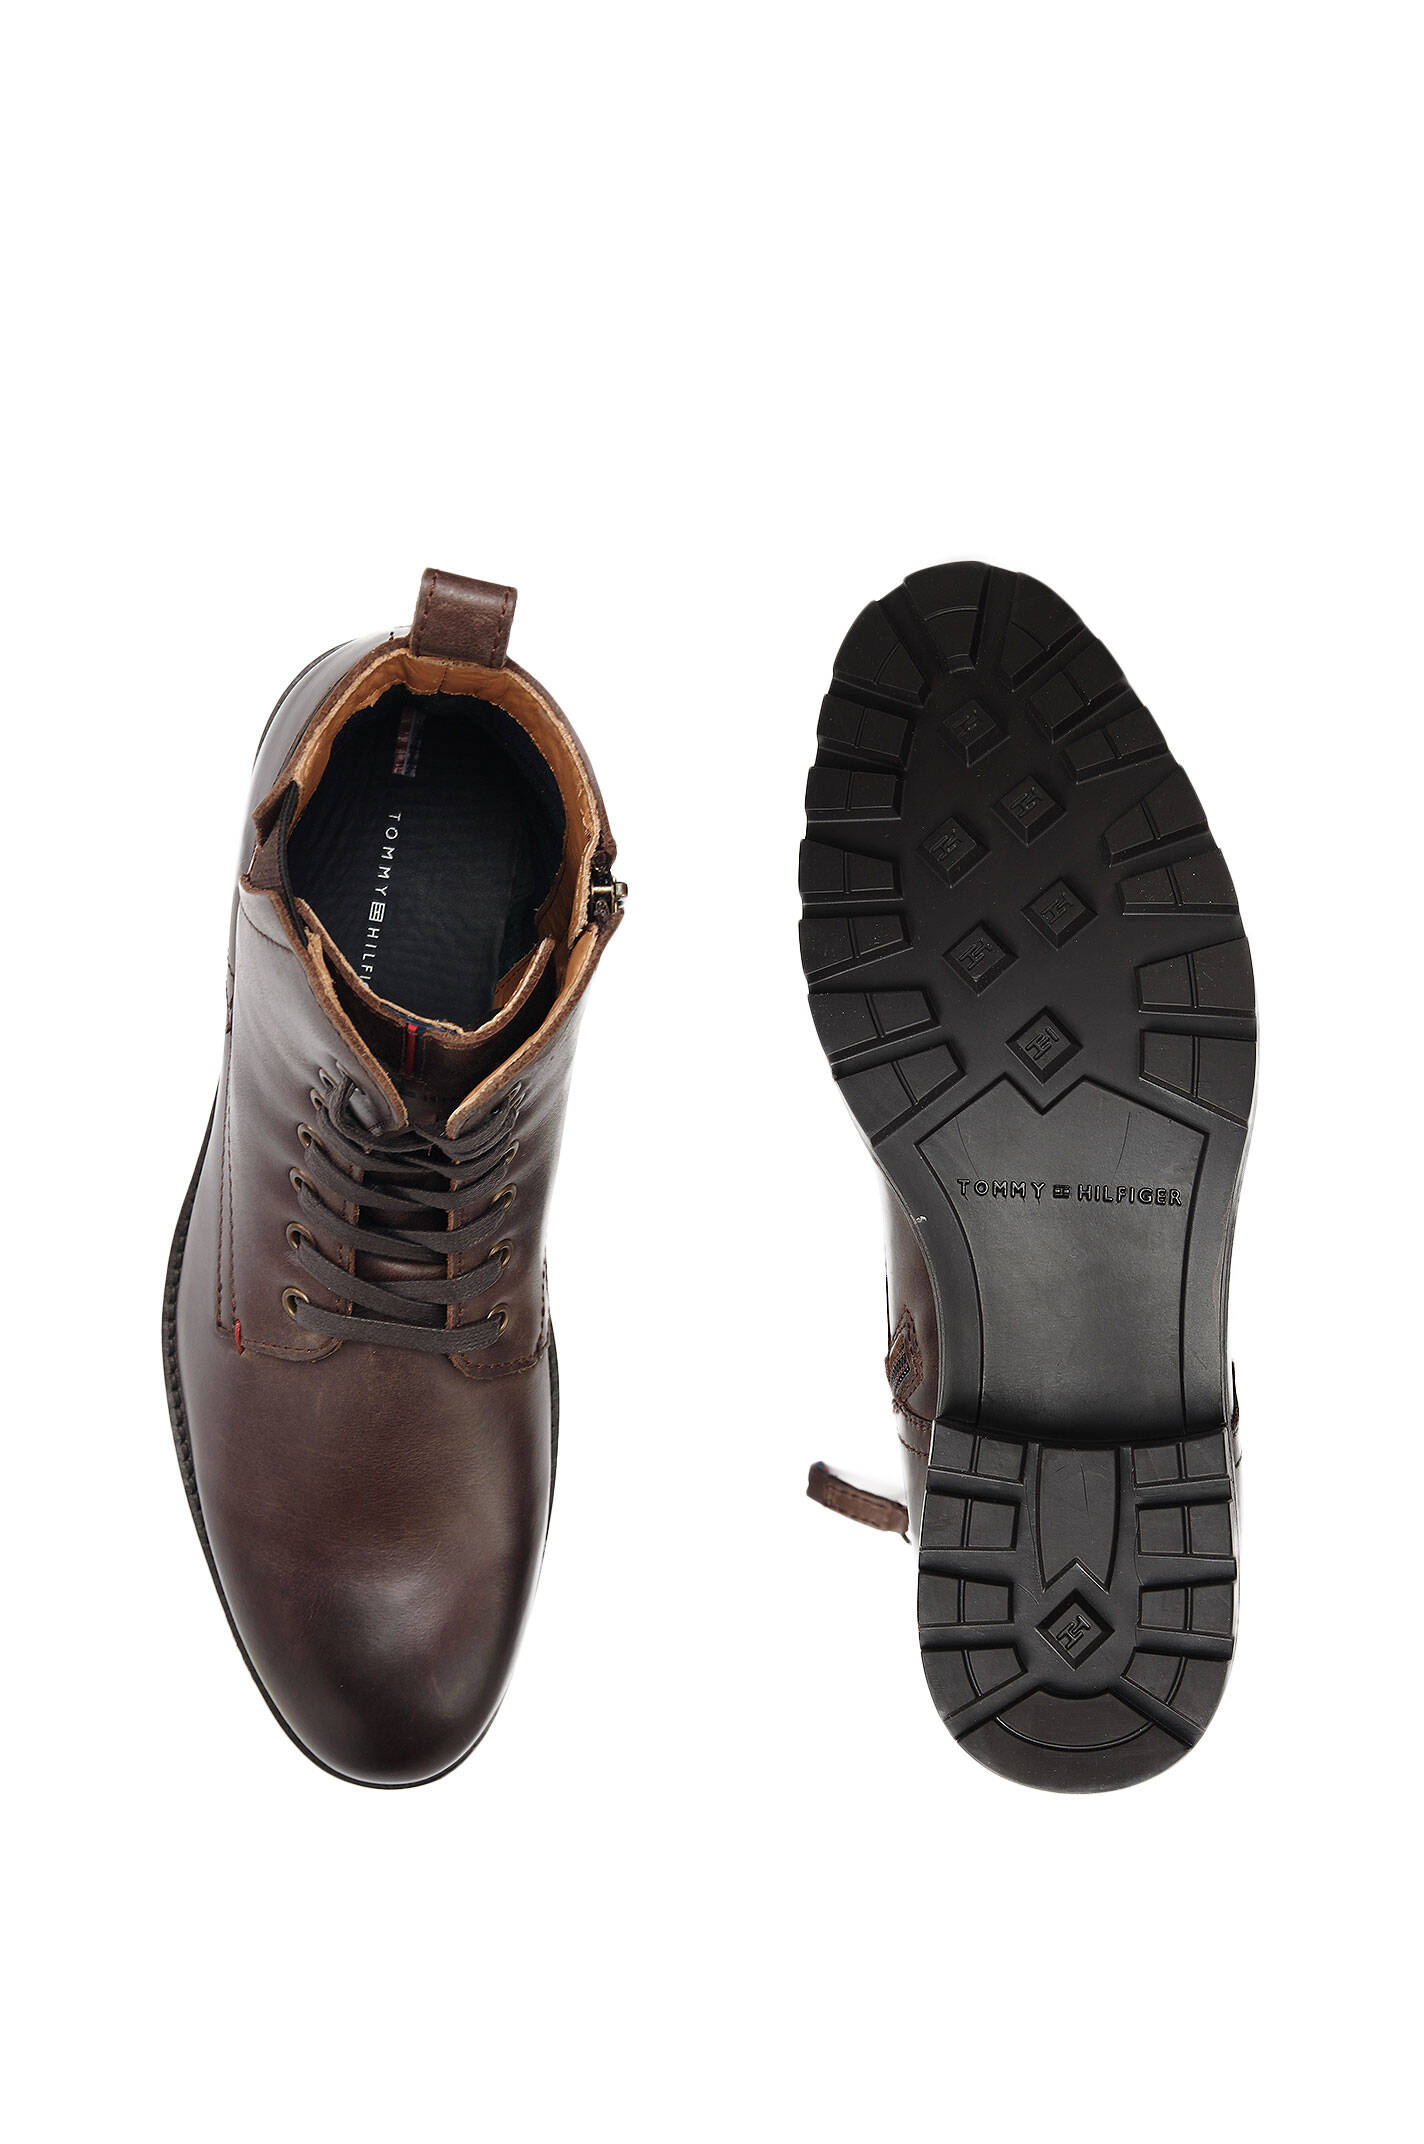 Carlos 14A Low boots